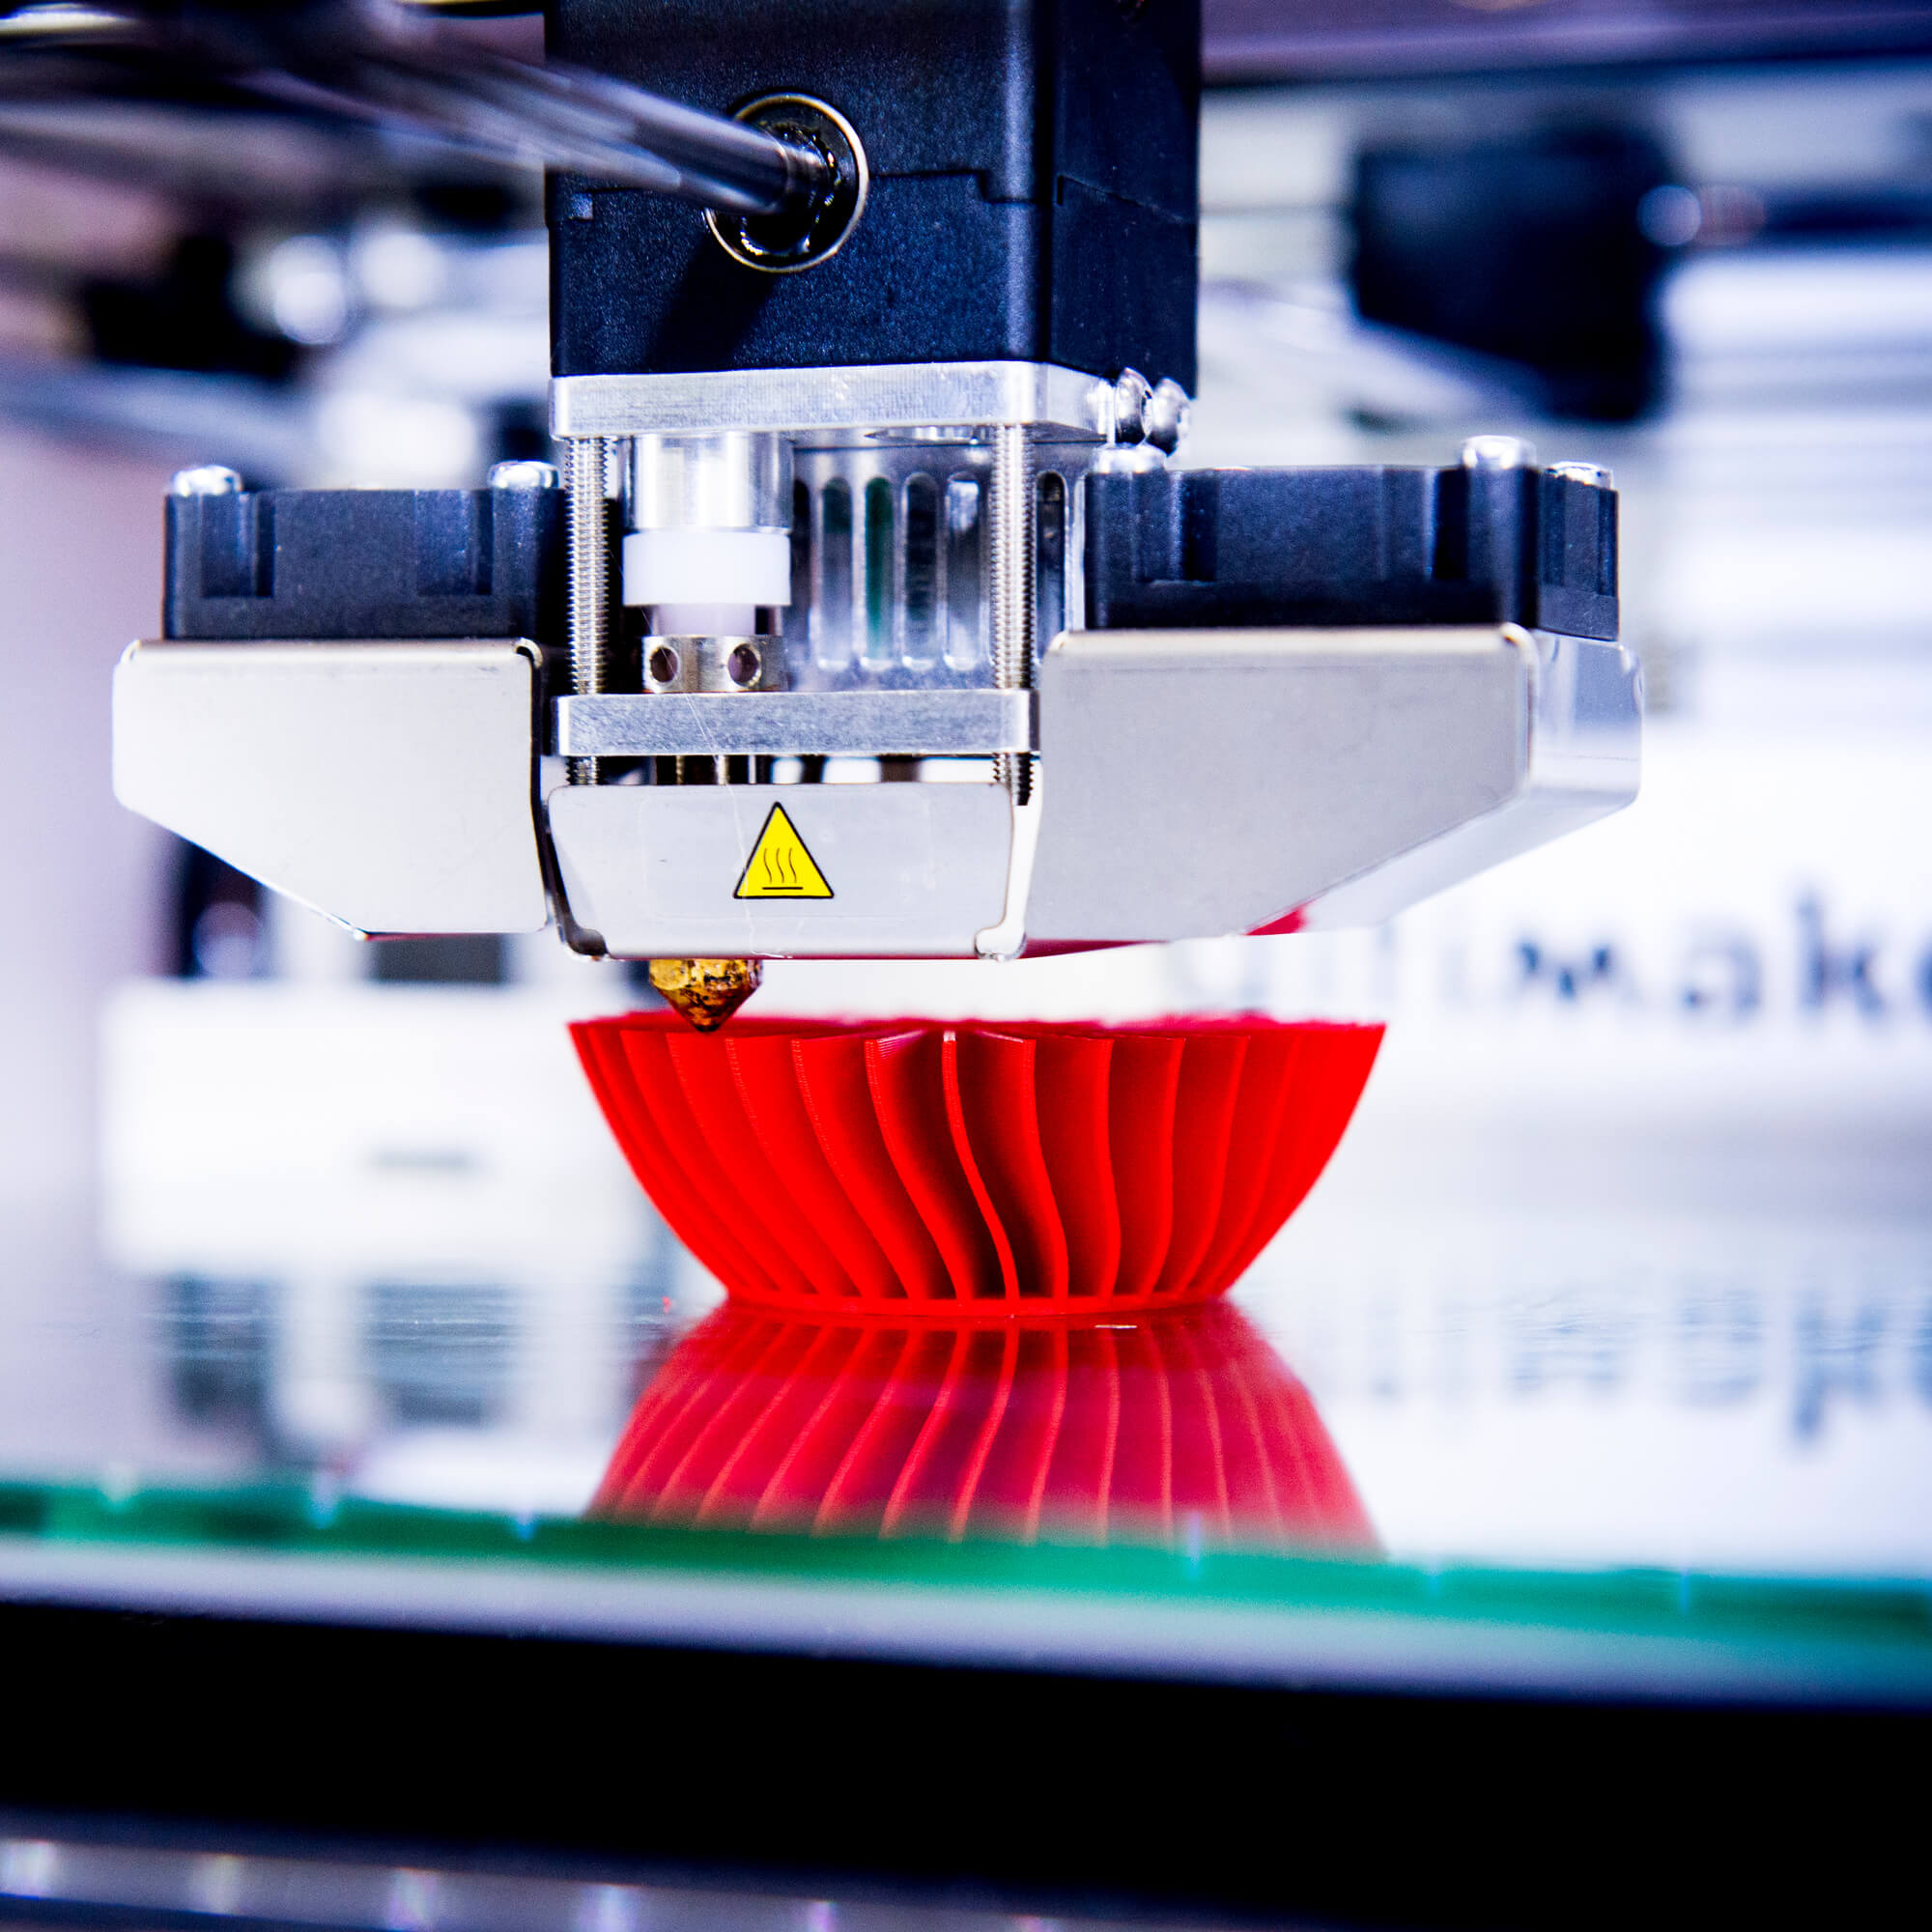 3D printer creating a red 3D product